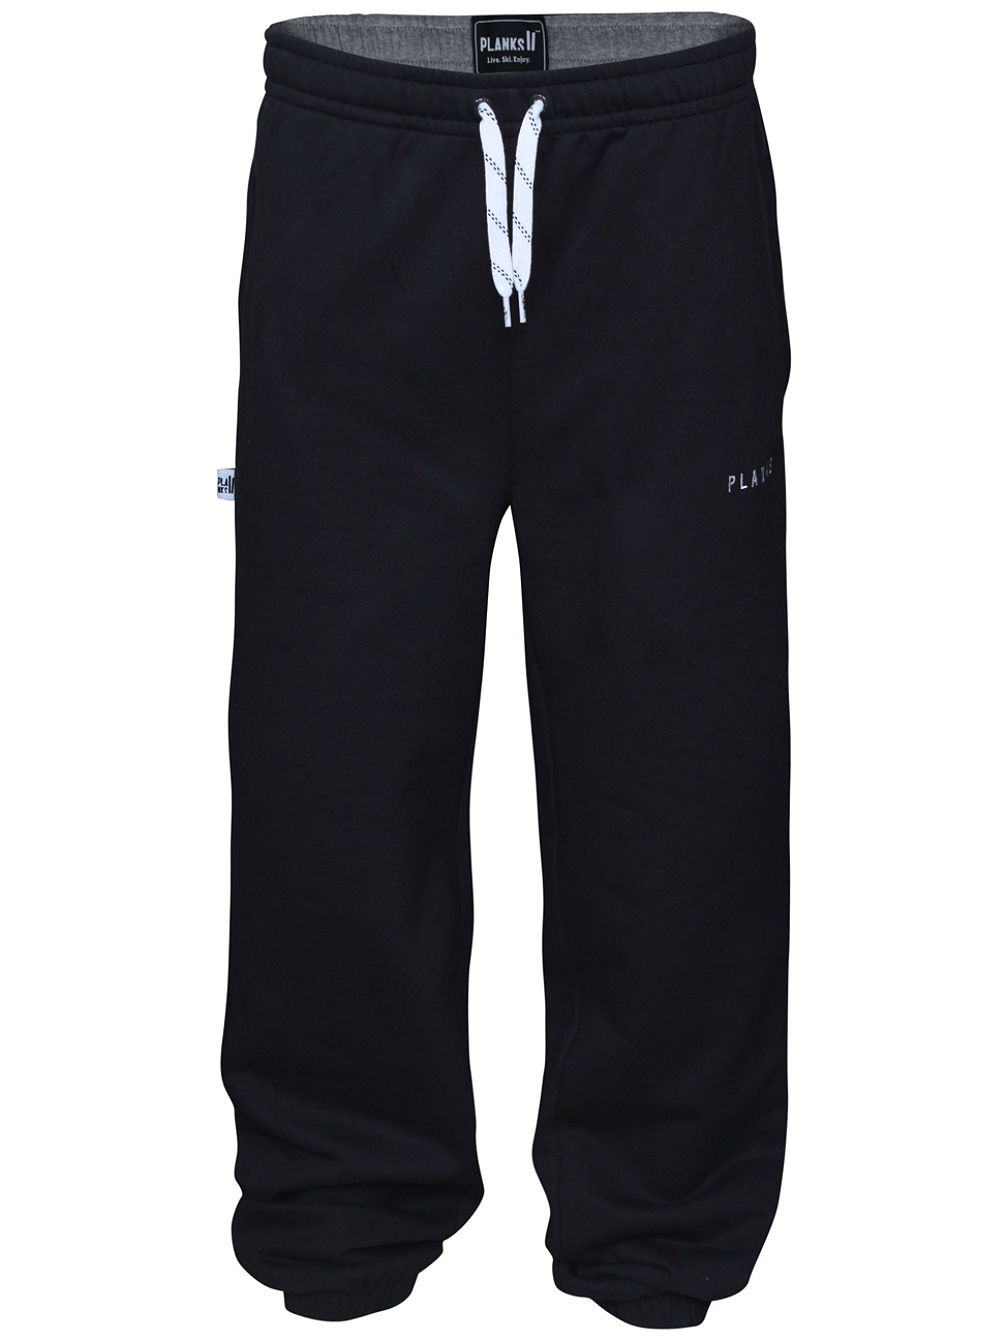 Couch Jogging Pants